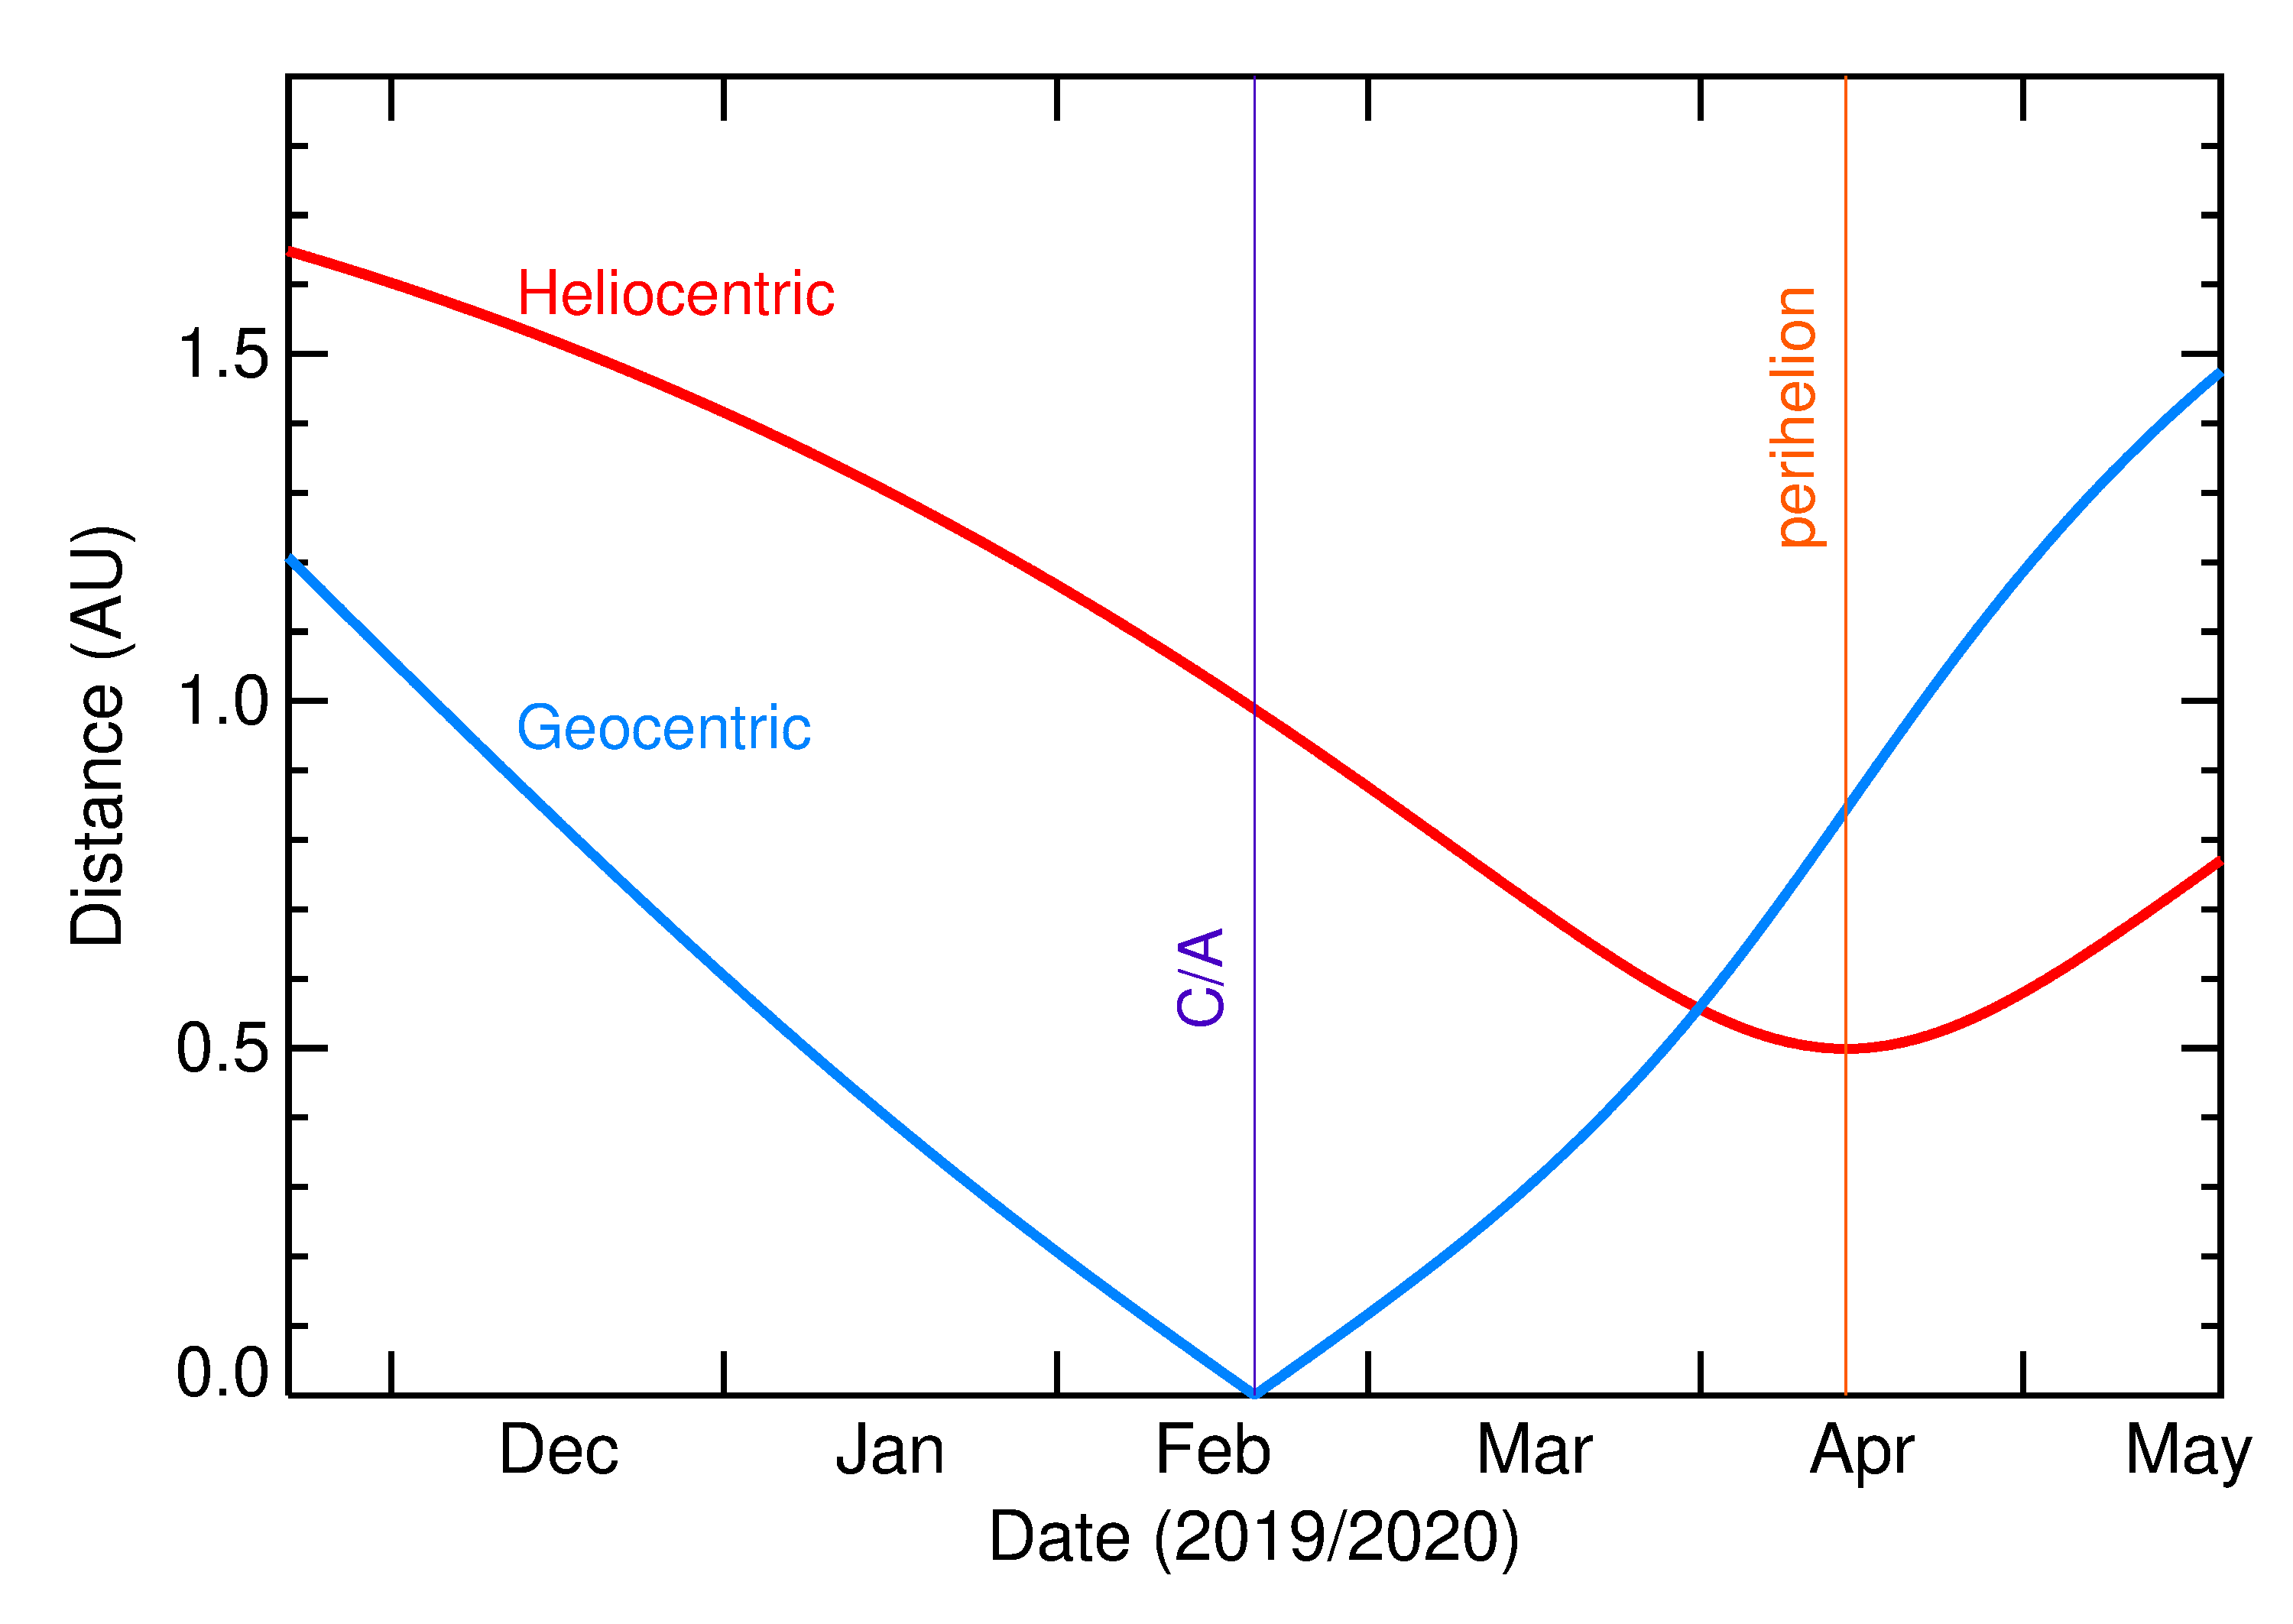 Heliocentric and Geocentric Distances of 2020 DA1 in the months around closest approach